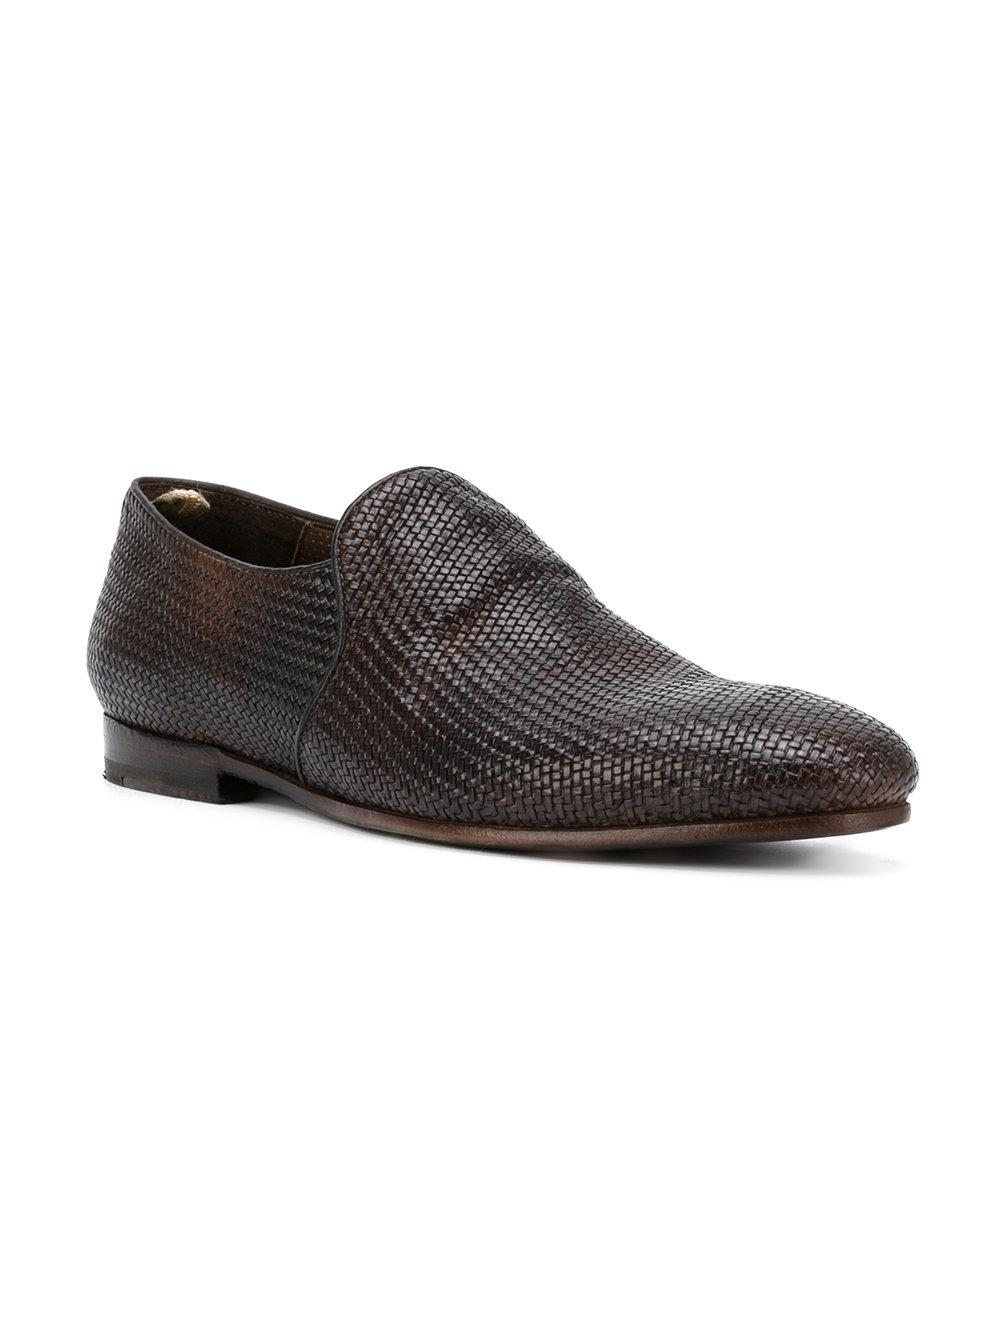 Officine Creative Woven Slippers In Brown For Men Lyst